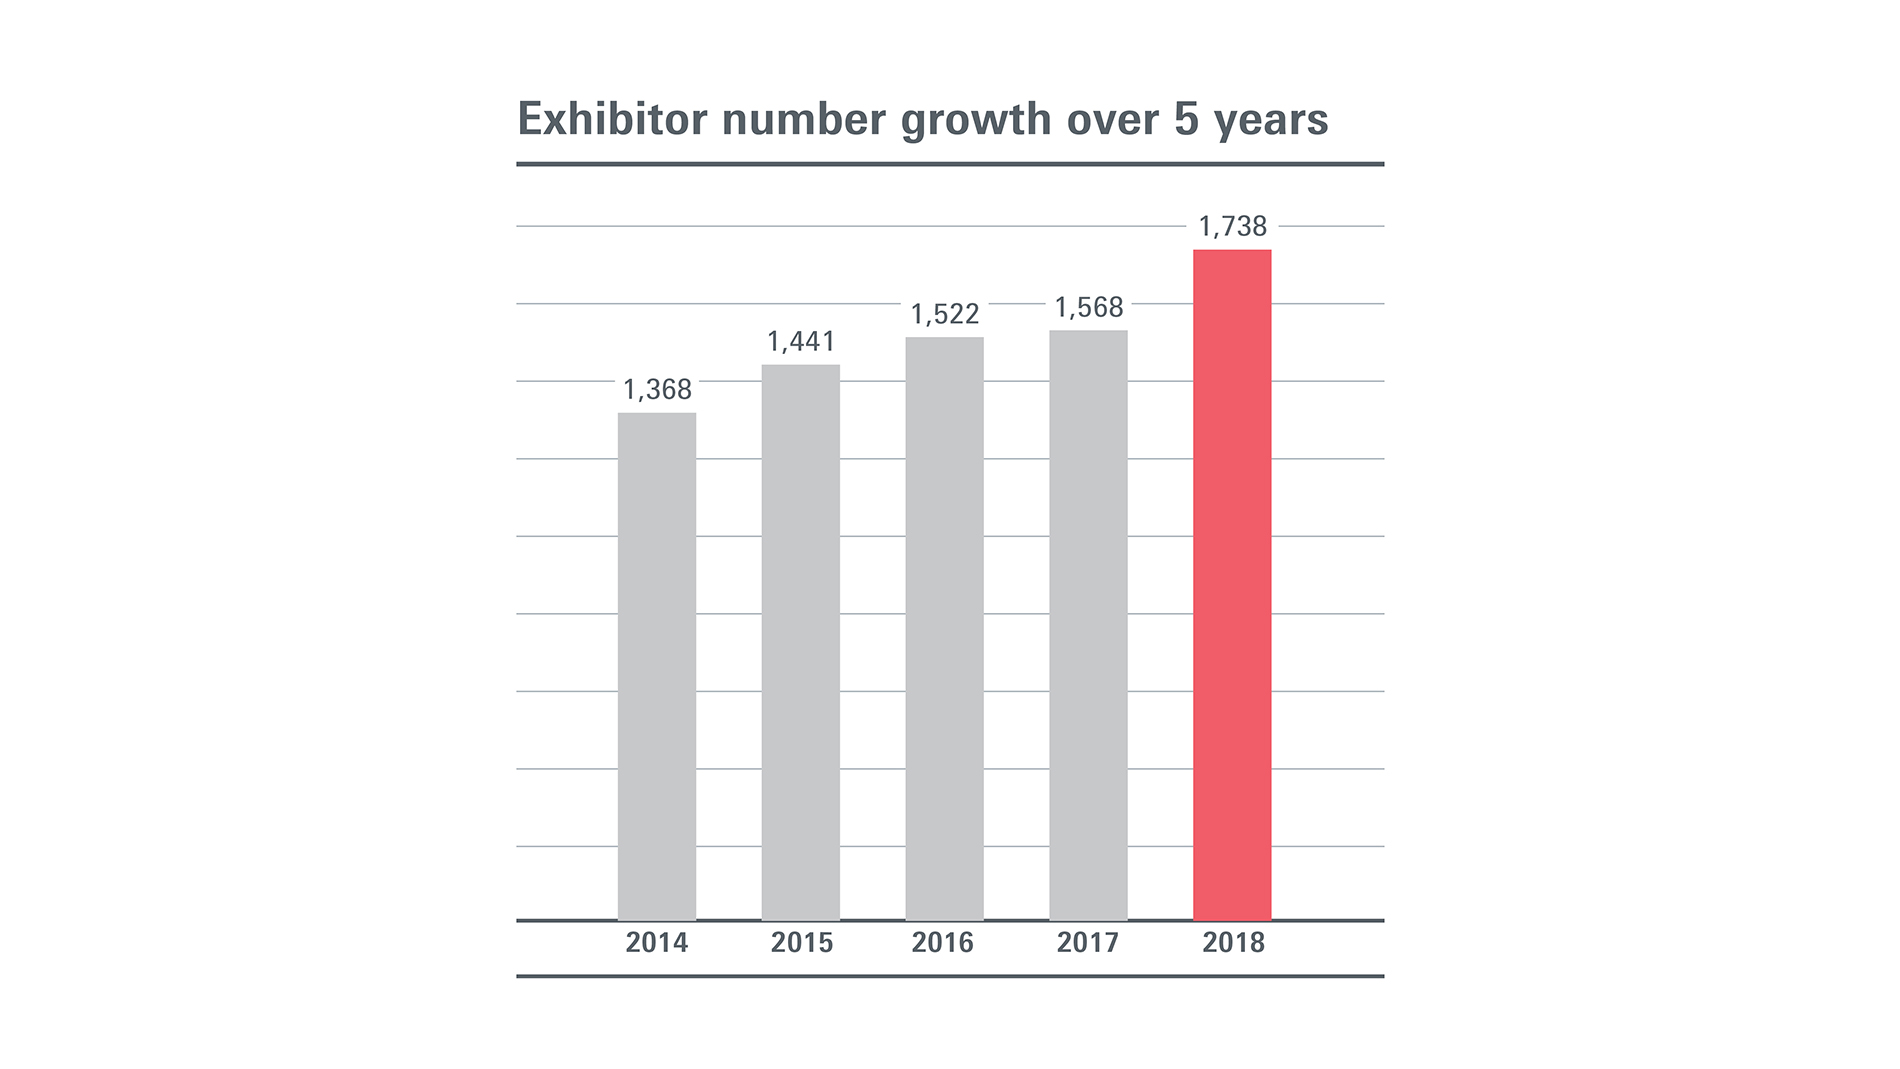 Exhibitor number growth over 5 years